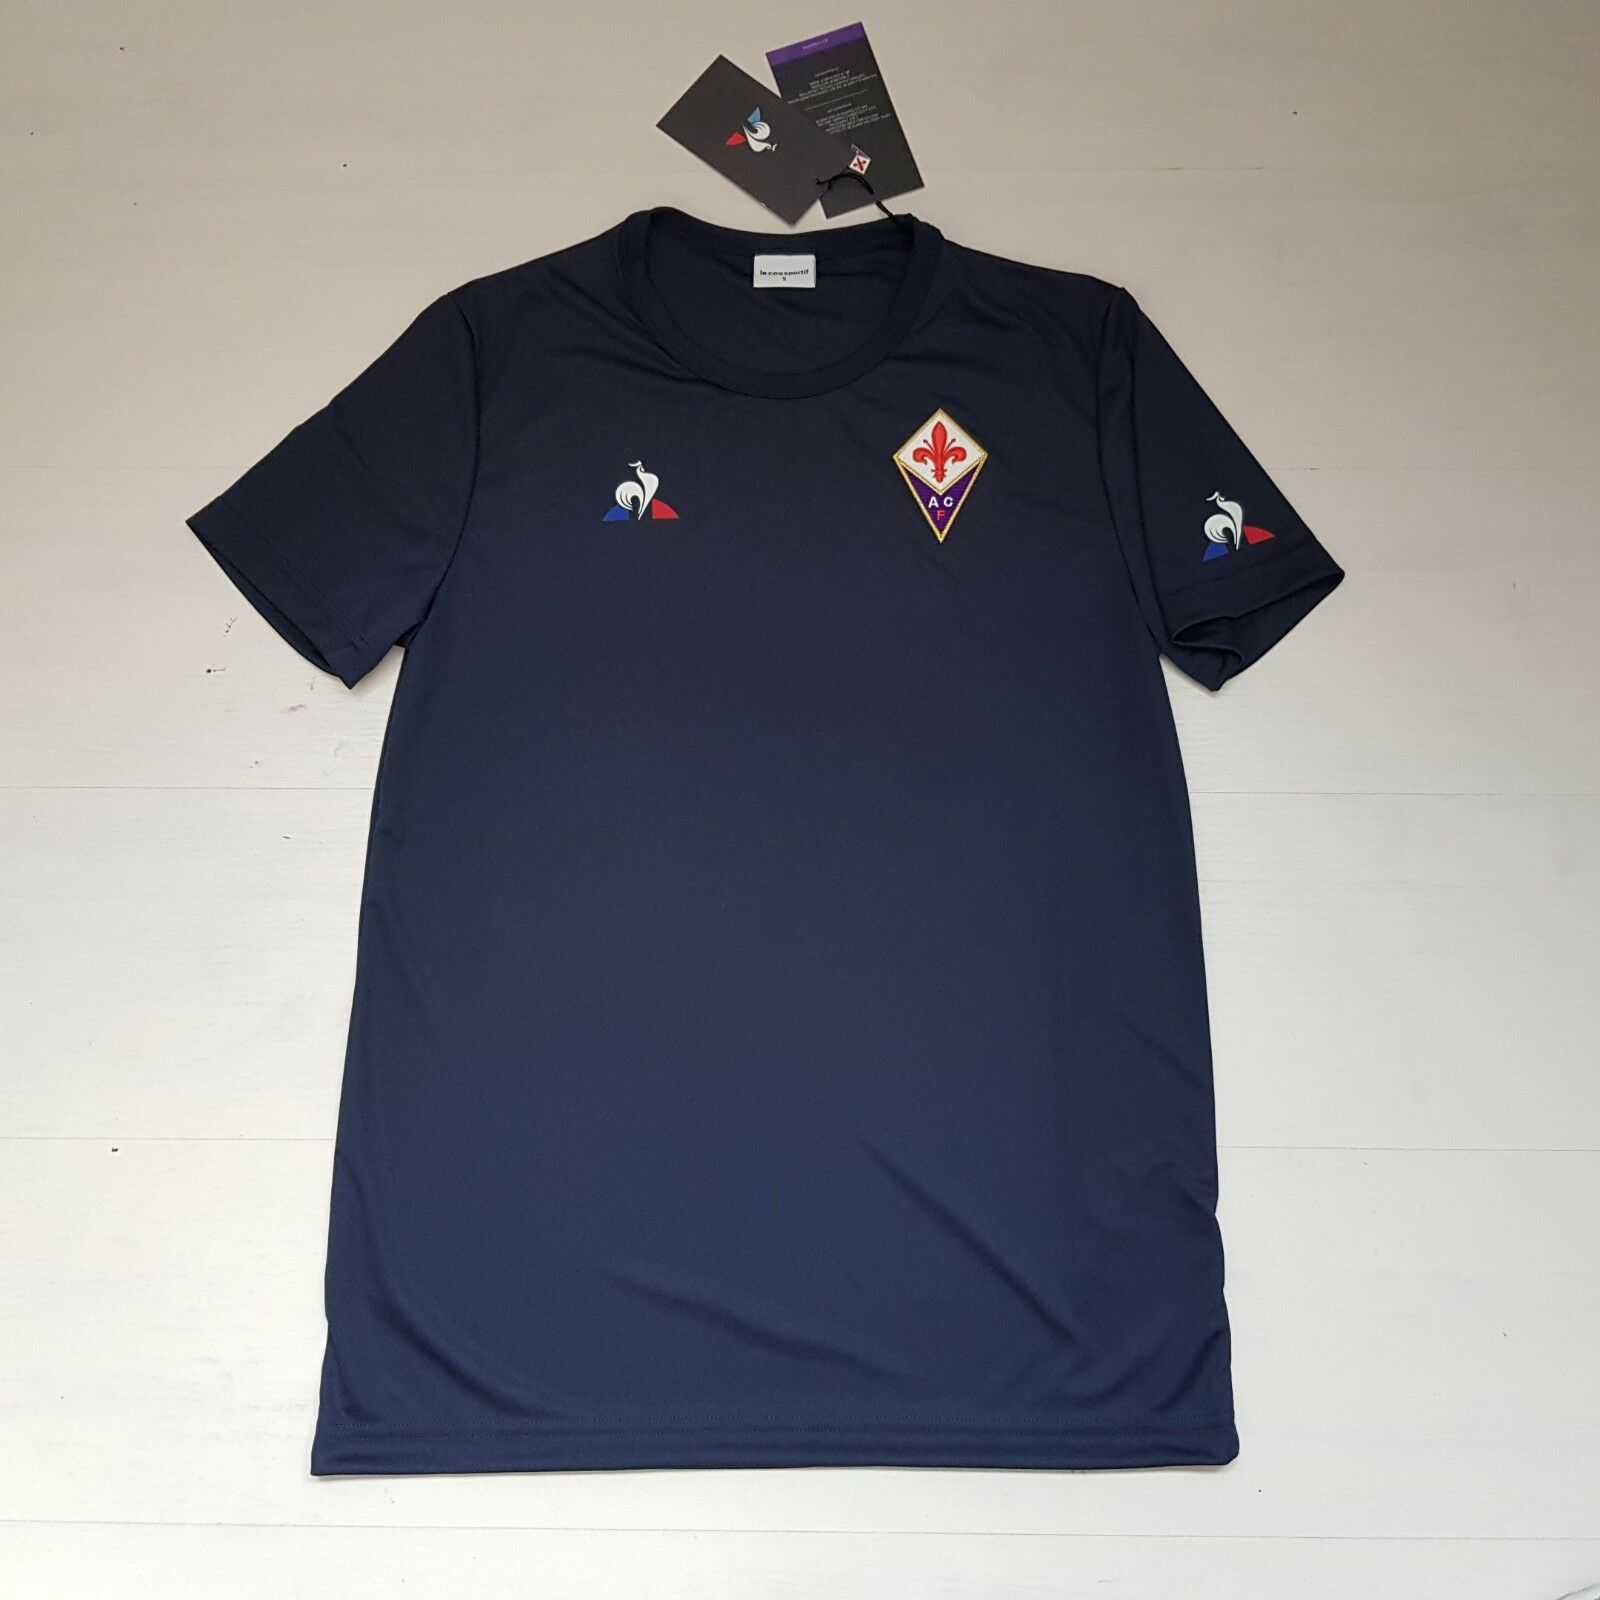 3444 LE COQ ATHLETIC FIORENTINA T-SHIRT SHIRT JERSEY WORKOUT TRAINING